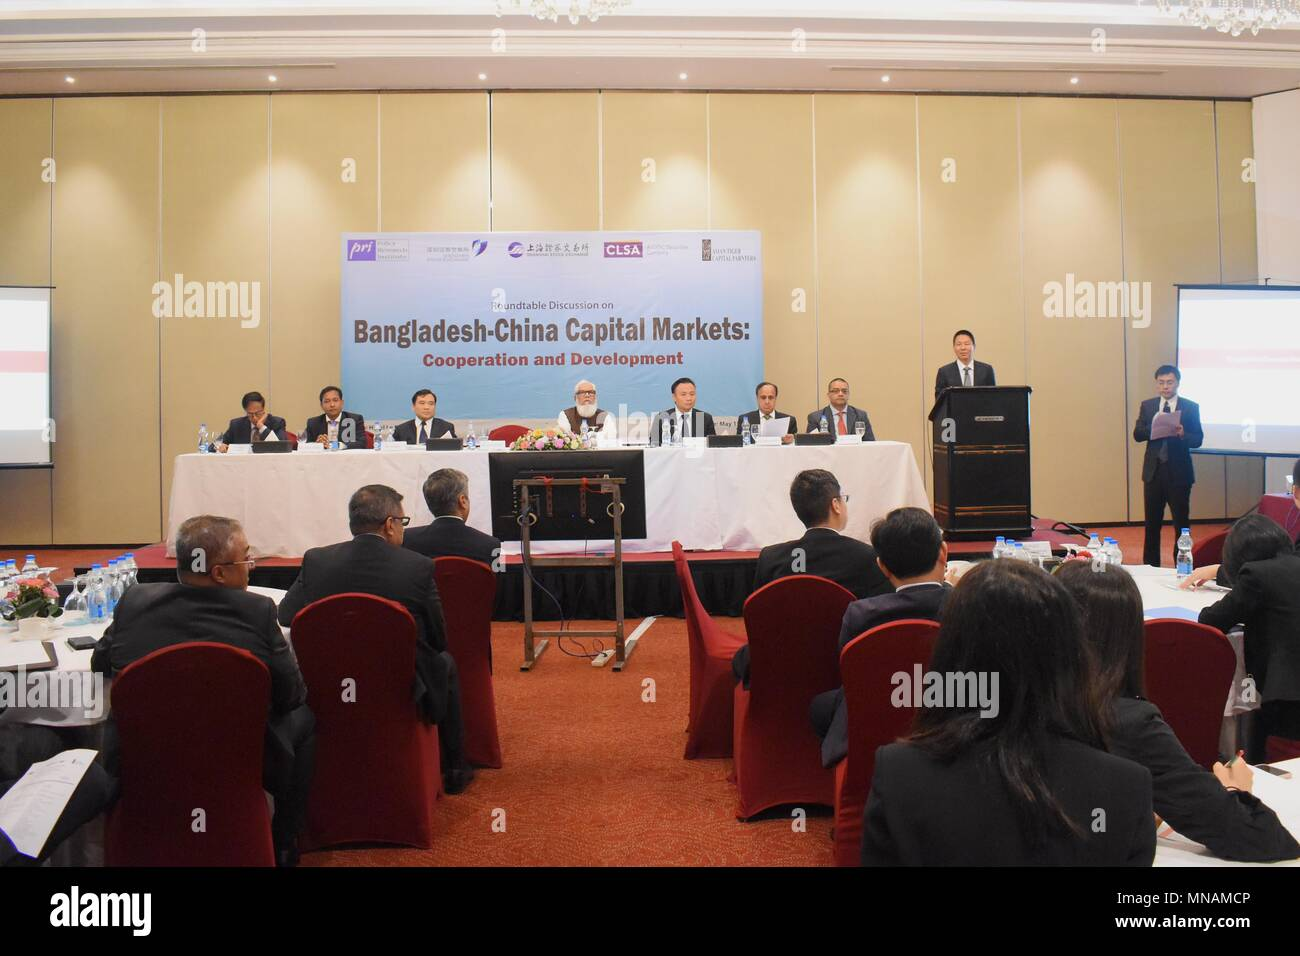 Dhaka. 16th May, 2018. Photo taken on May 15, 2018 shows the roundtable discussion on 'Bangladesh-China Capital Markets' held in Dhaka, capital of Bangladesh. The Roundtable, which has been designed to facilitate the exchange of ideas and experiences in the field of share market matters, was attended by high-level participants from the government, regulators, representatives from Bangladeshi and Chinese premier bourses, financial institutions, economic experts and journalists. Credit: Xinhua/Alamy Live News - Stock Image